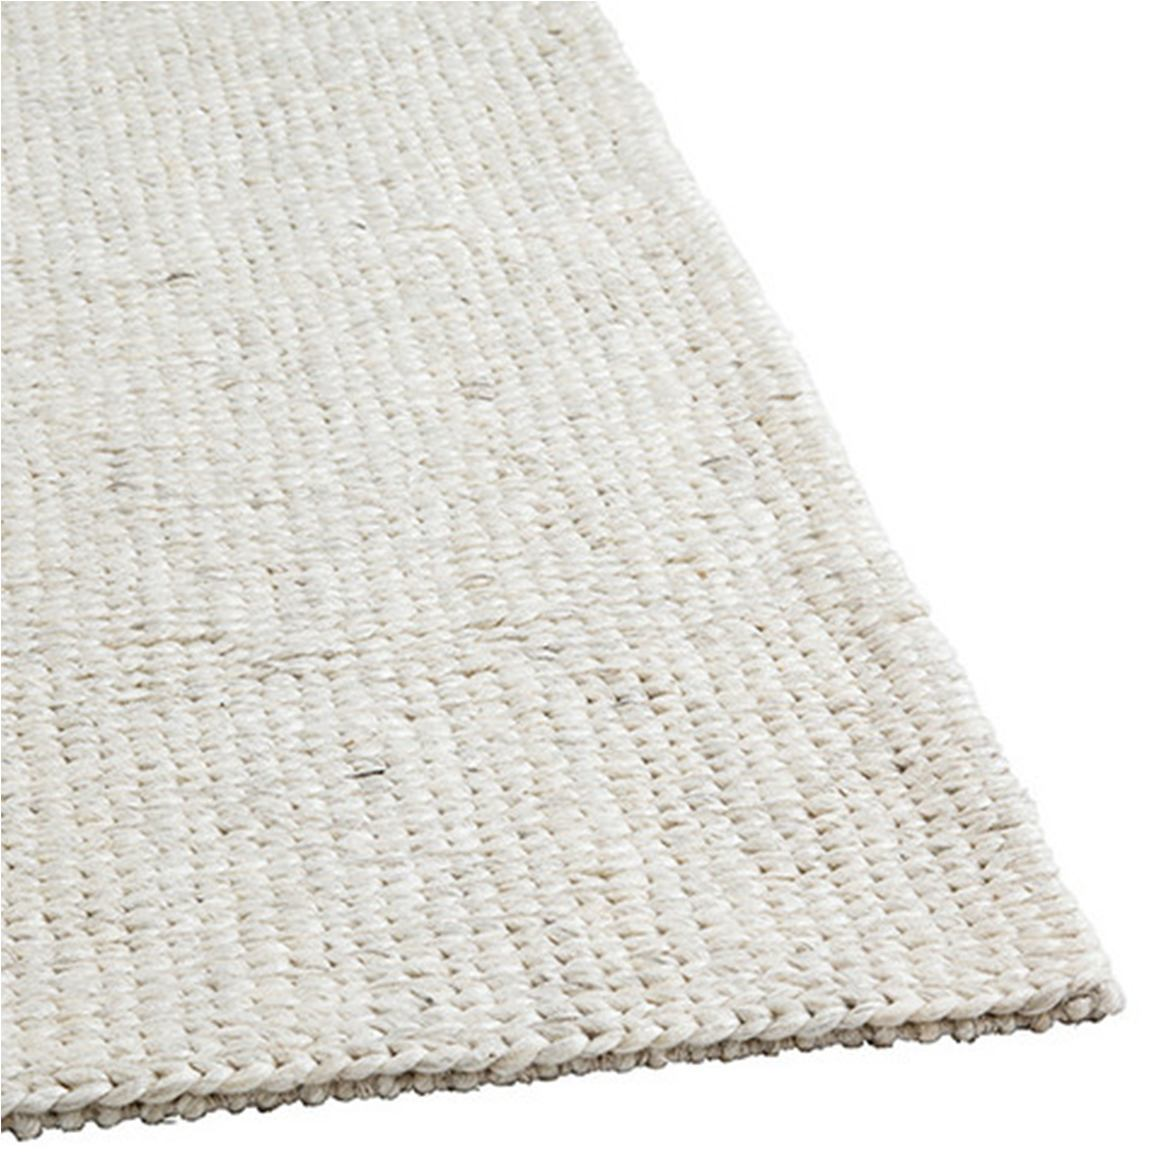 ARMADILLO SIERRA WEAVE RUG - Eclectic Cool  - 3